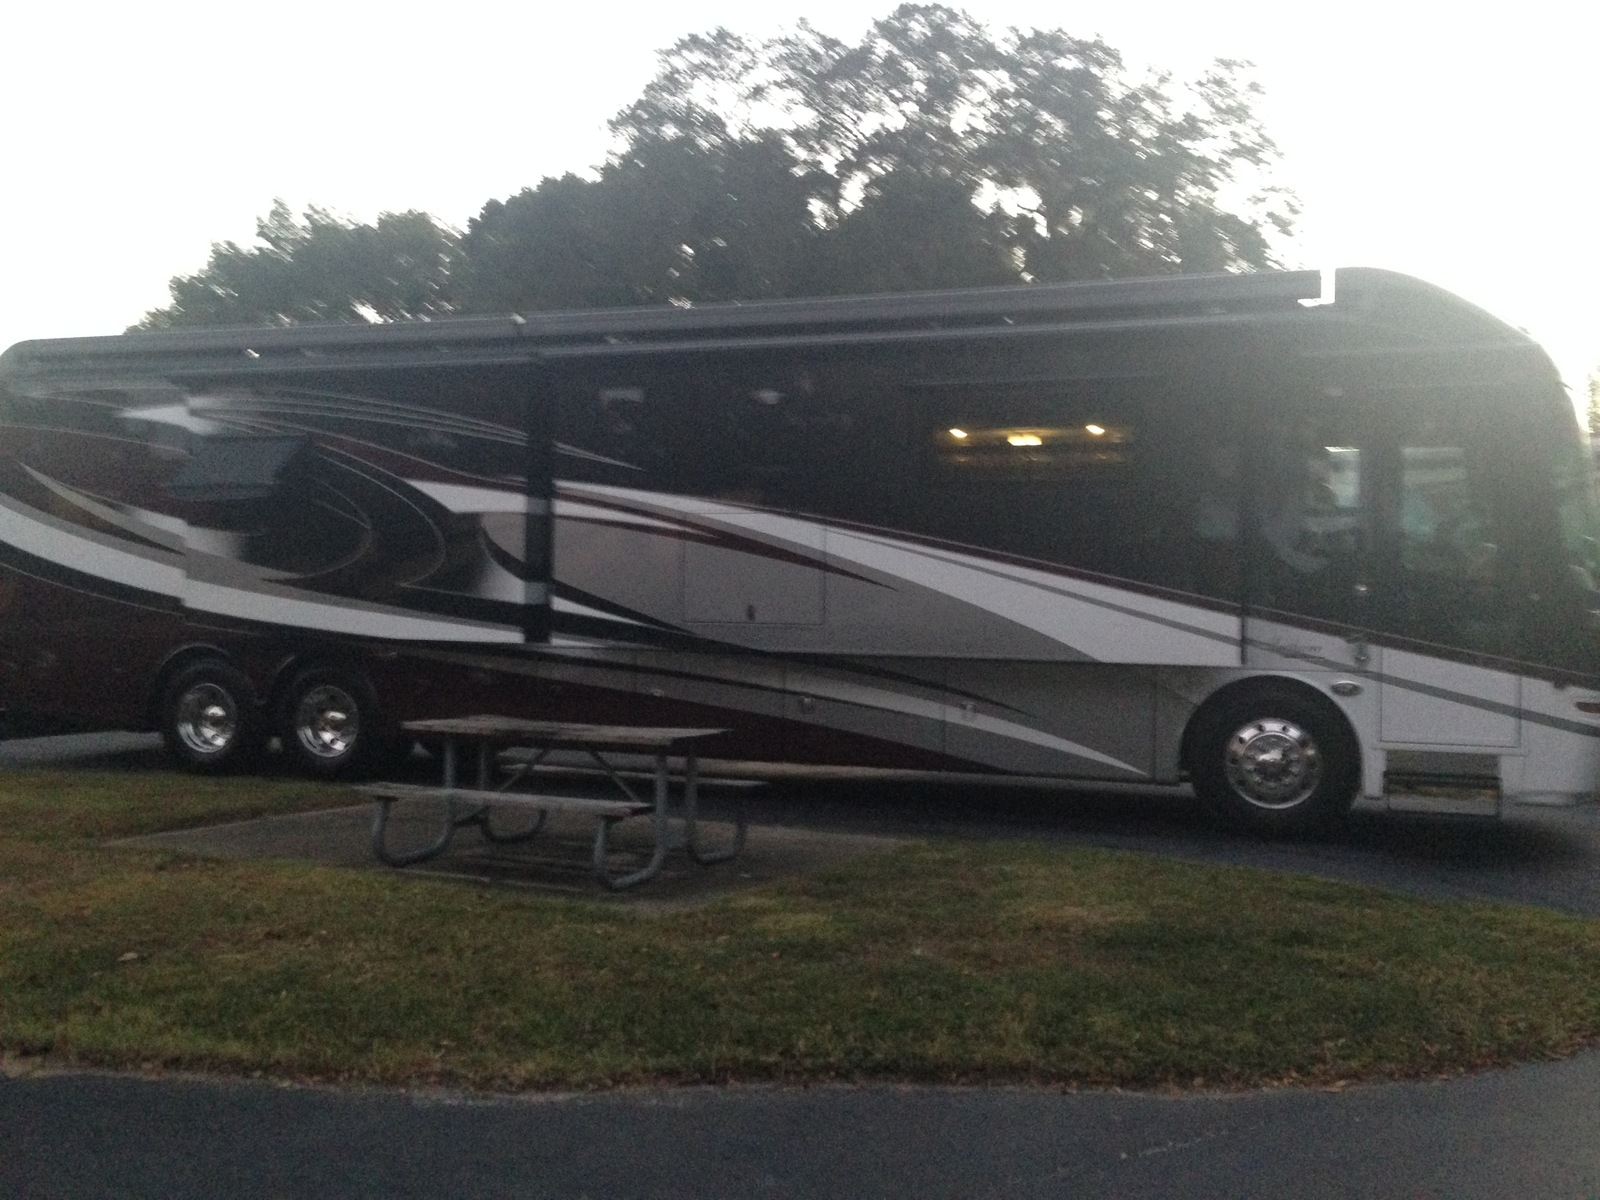 2014 Entegra Anthem 44B is Loaded For Sale In Miller Place, NY 11764